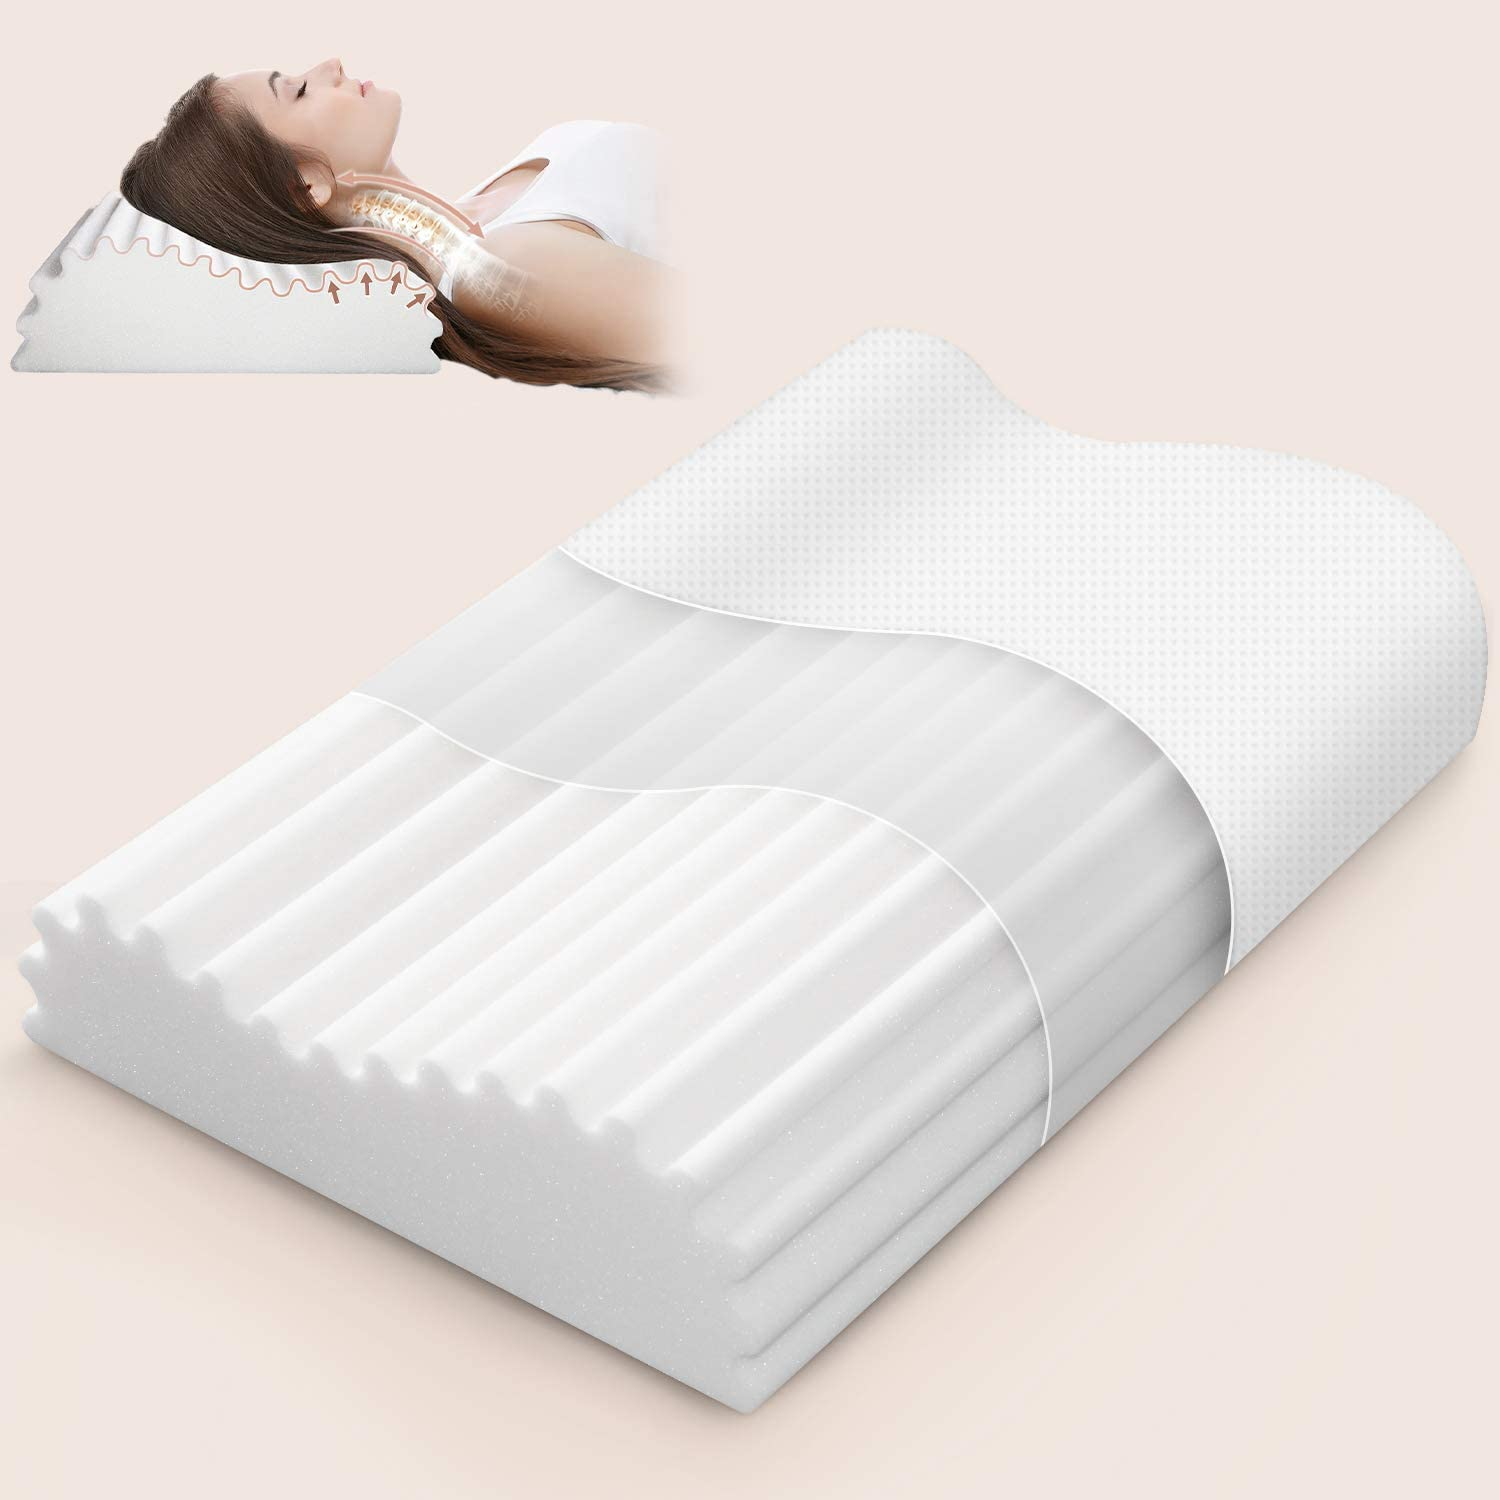 ivellow memory foam pillow for side sleeper cervical contour pillow for neck pain orthopedic neck support pillow chiropractic ergonomic pillow